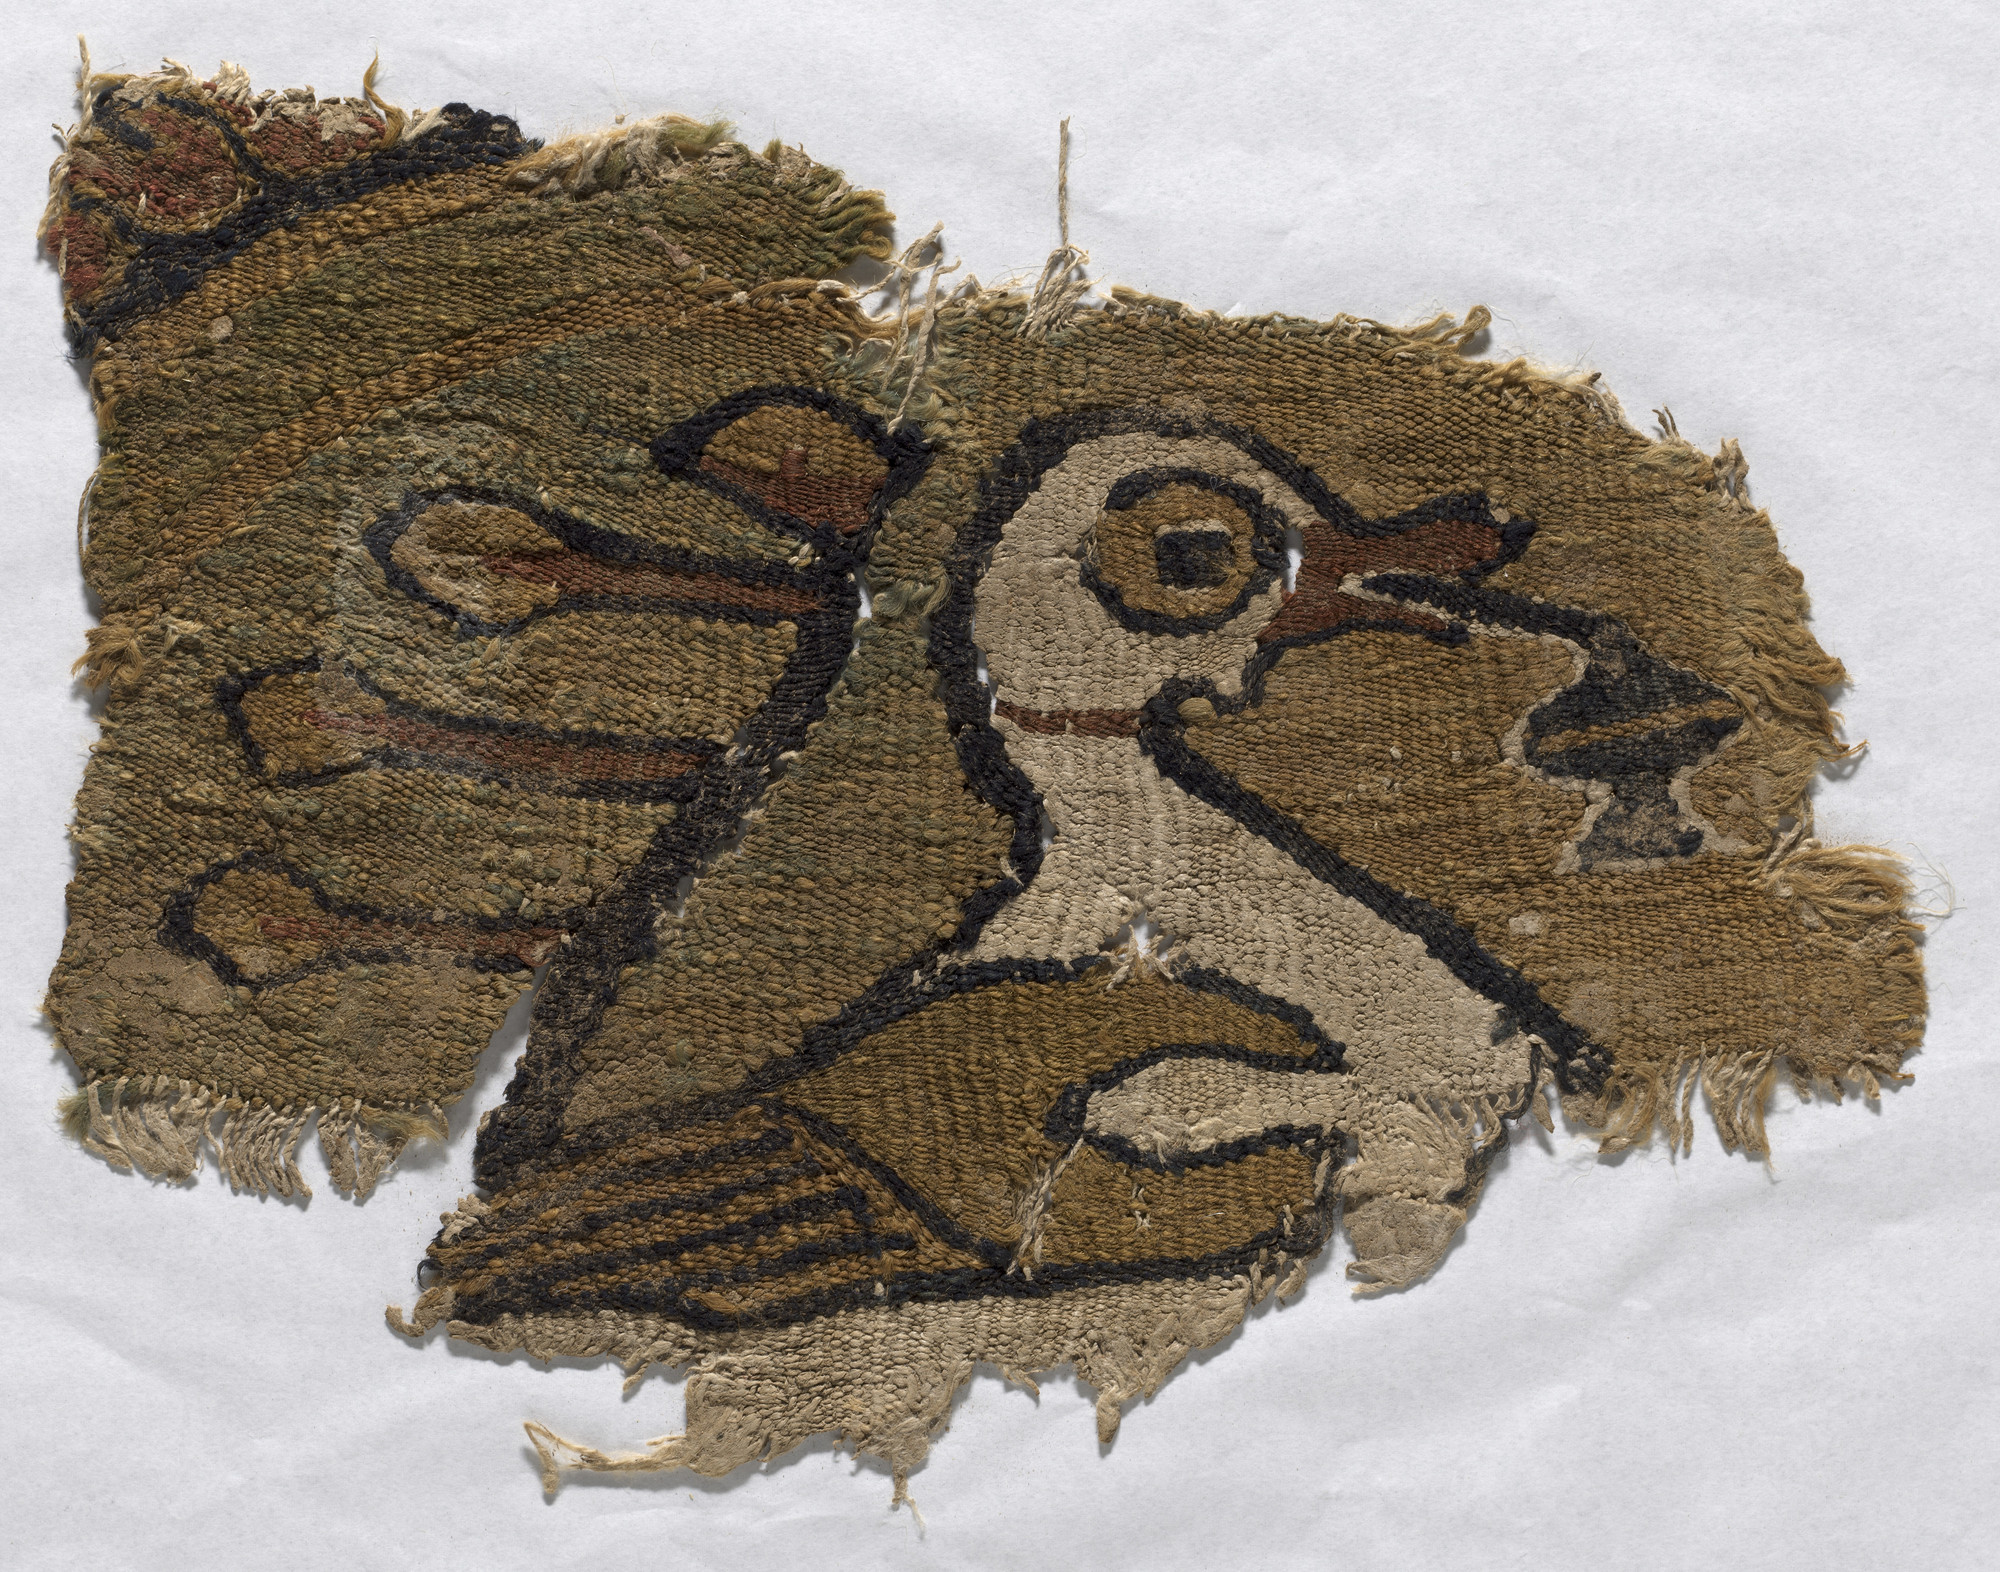 Unknown designer. Rondel fragment with water fowl. 4th-6th century C.E.